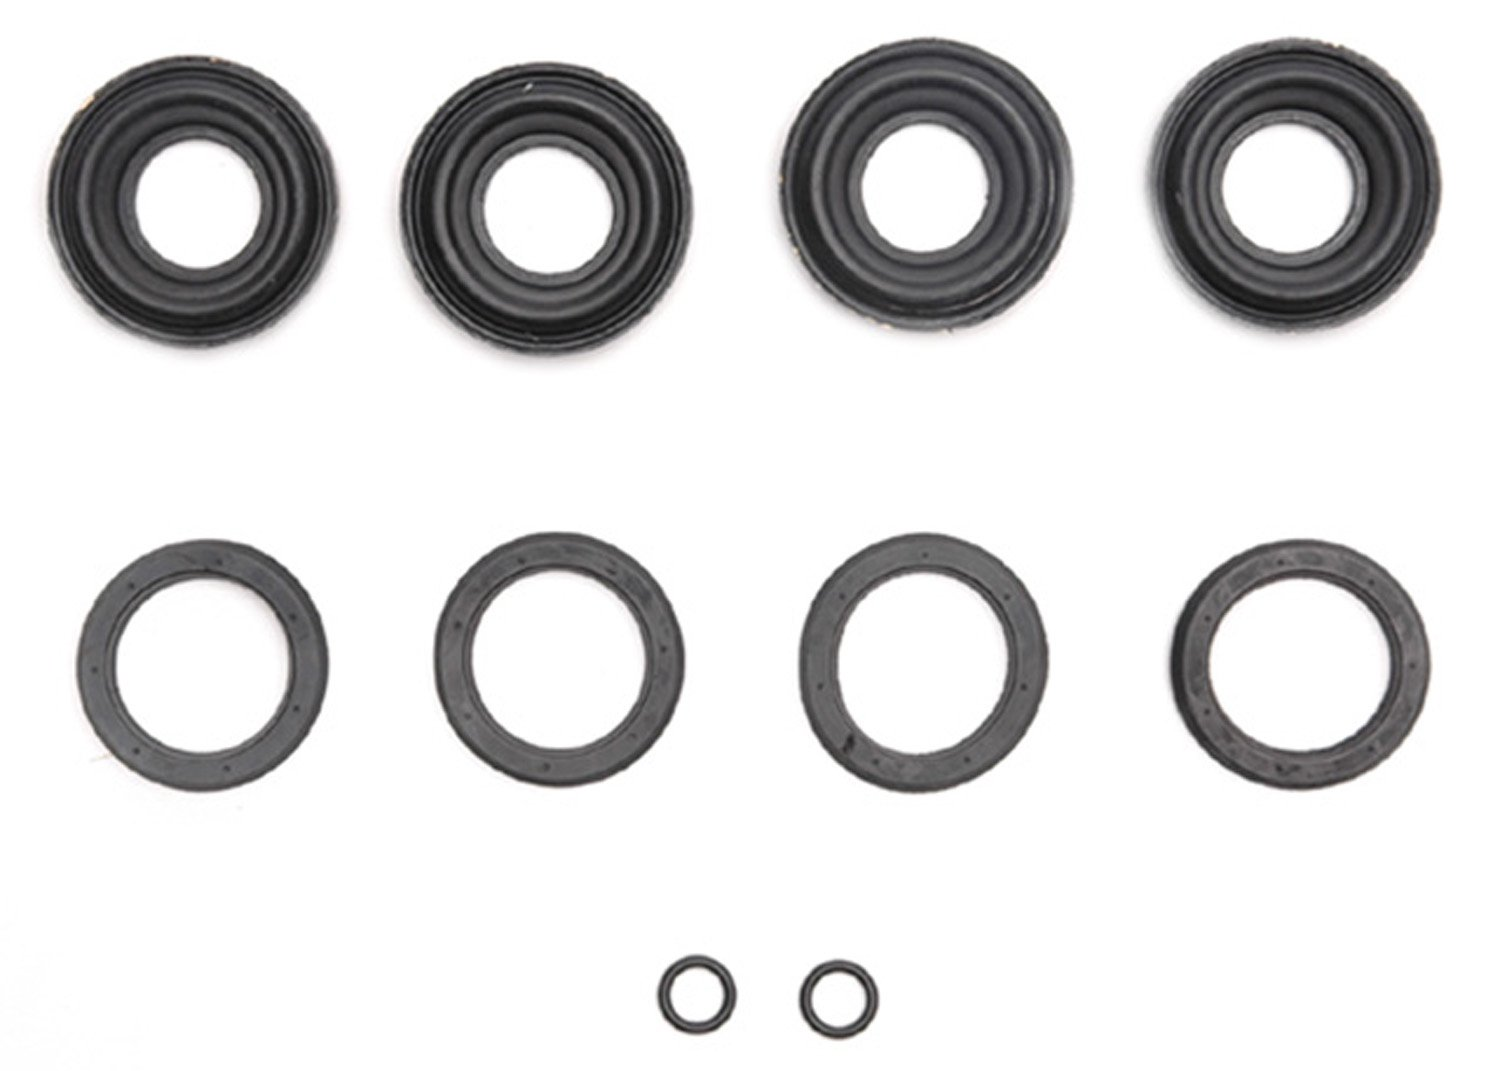 ACDelco 18H1147 Professional Front Disc Brake Caliper Boot and Seal Kit with Boots, Seals, and Bushings